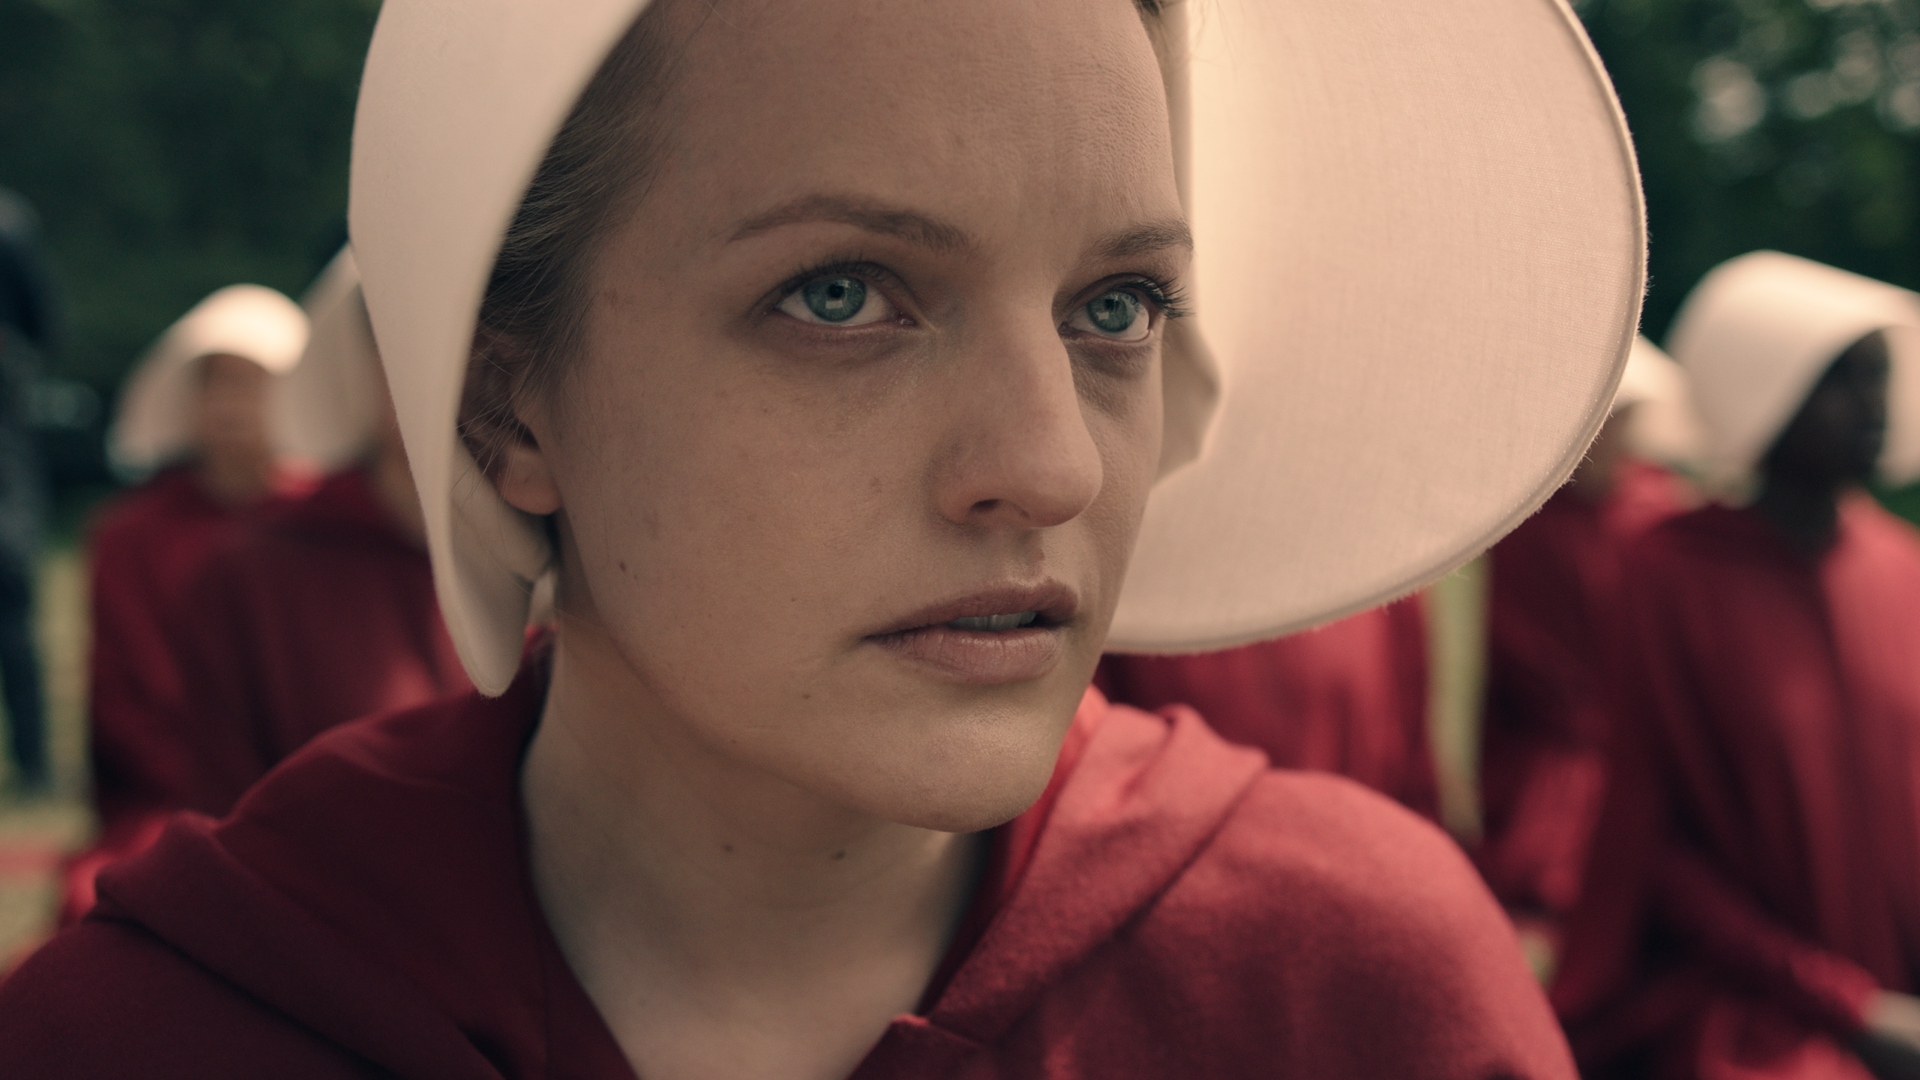 What Time Does The Handmaid's Tale Premiere on Hulu?